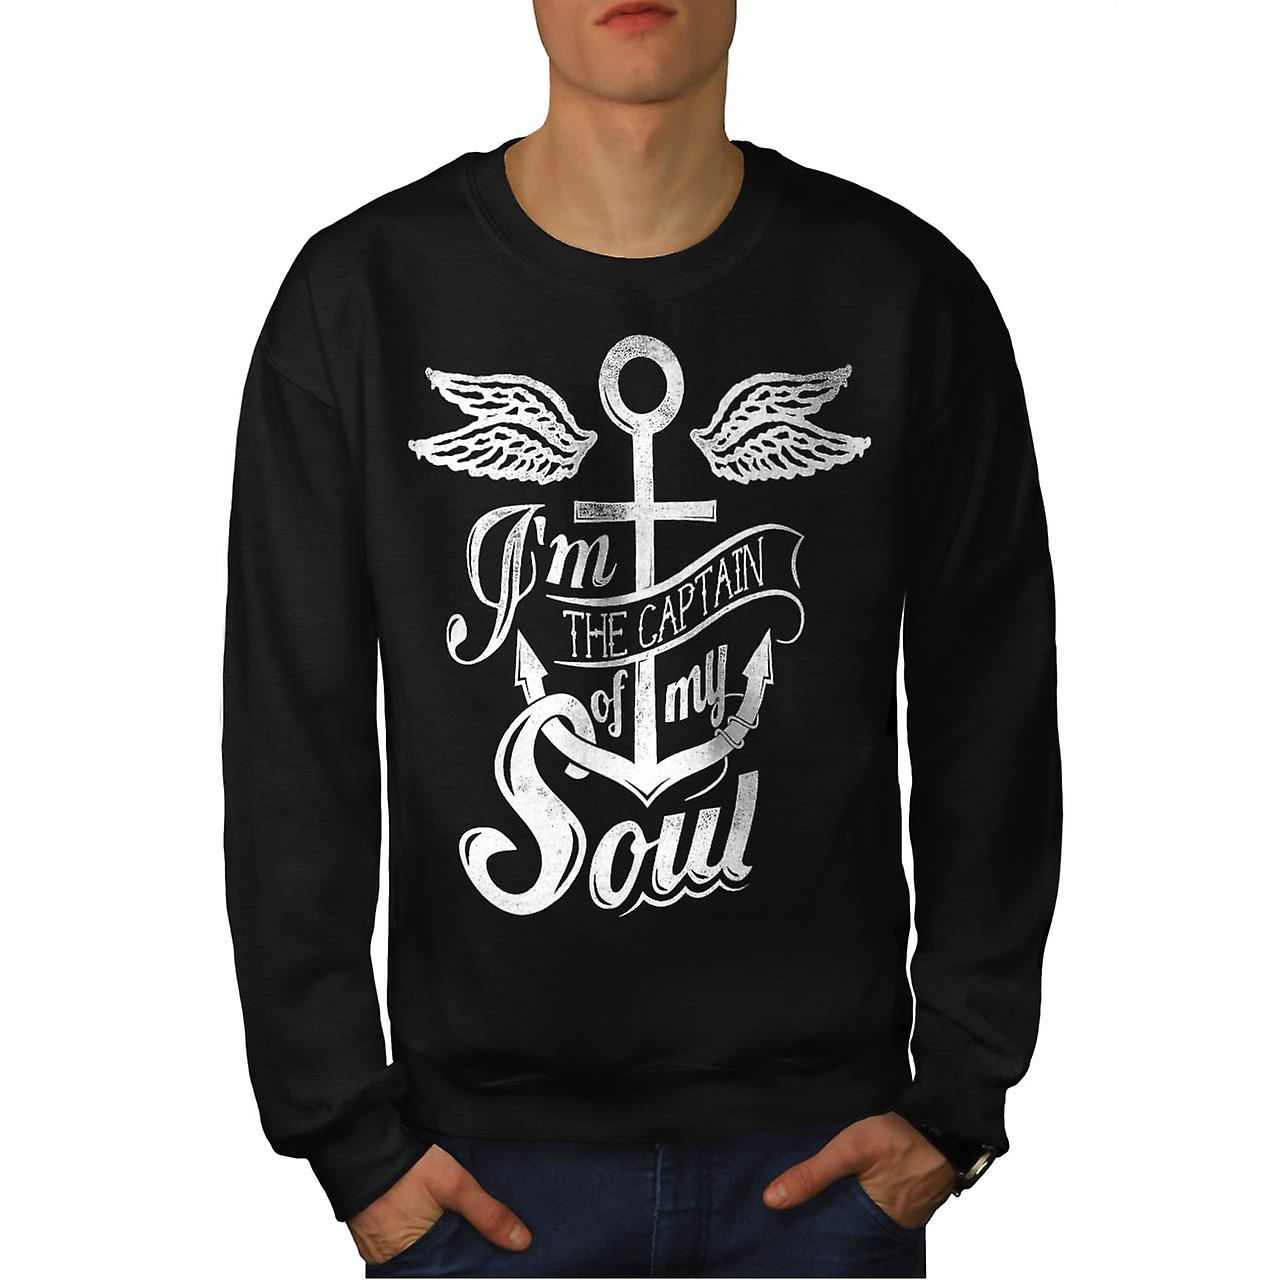 Capitaine de mon rêve vrai Soul Men Black Sweatshirt | Wellcoda